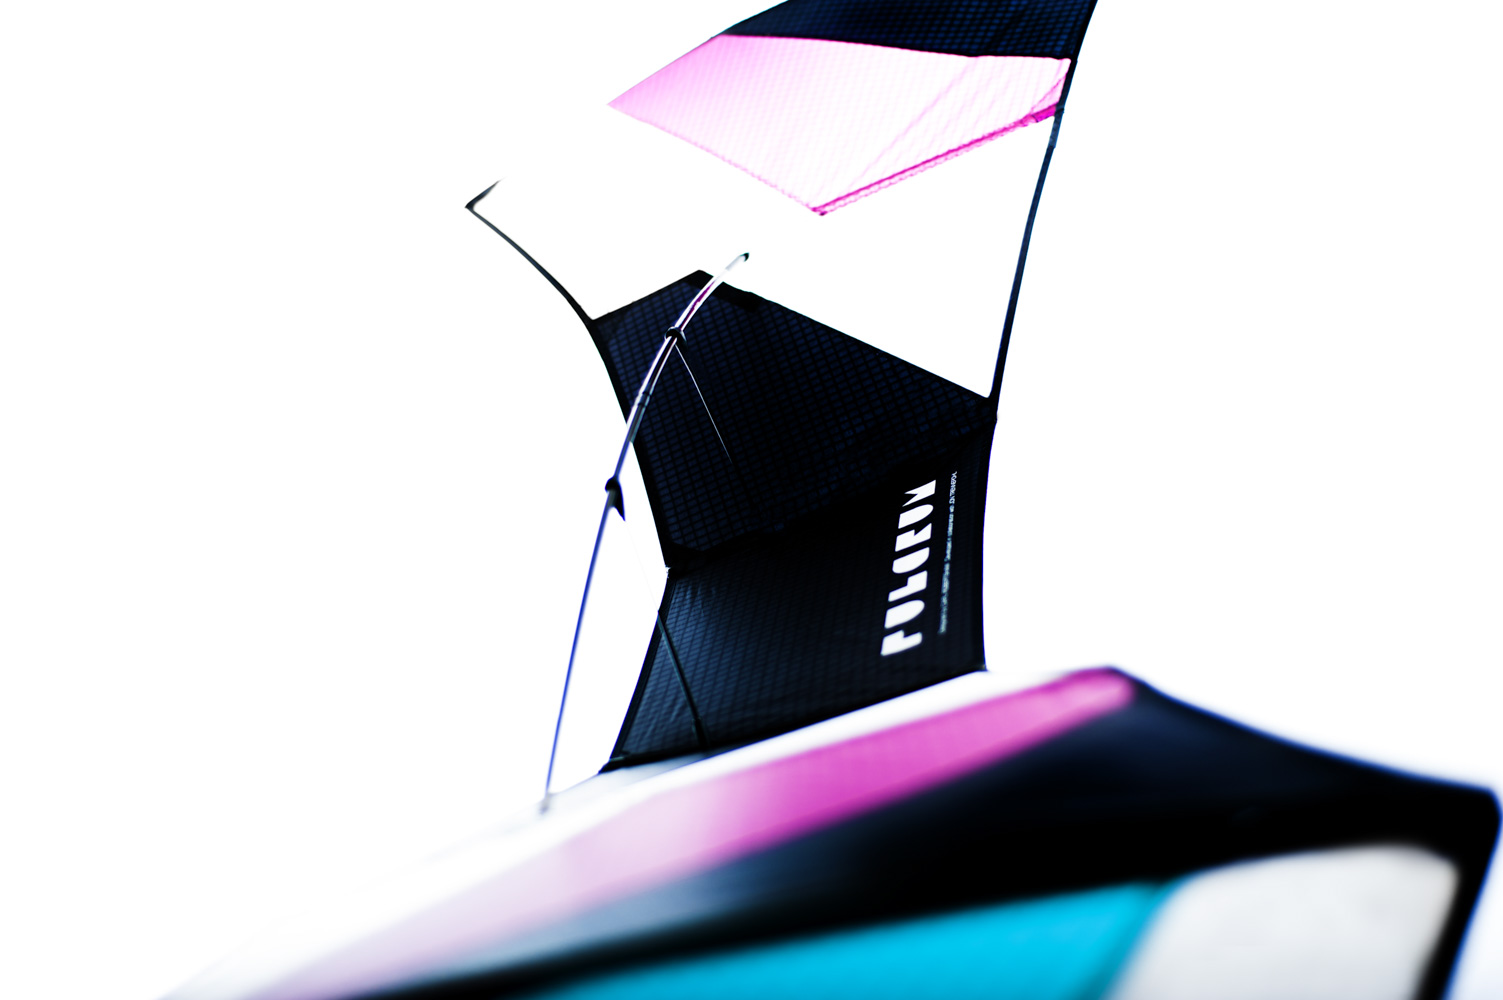 Kite product photography